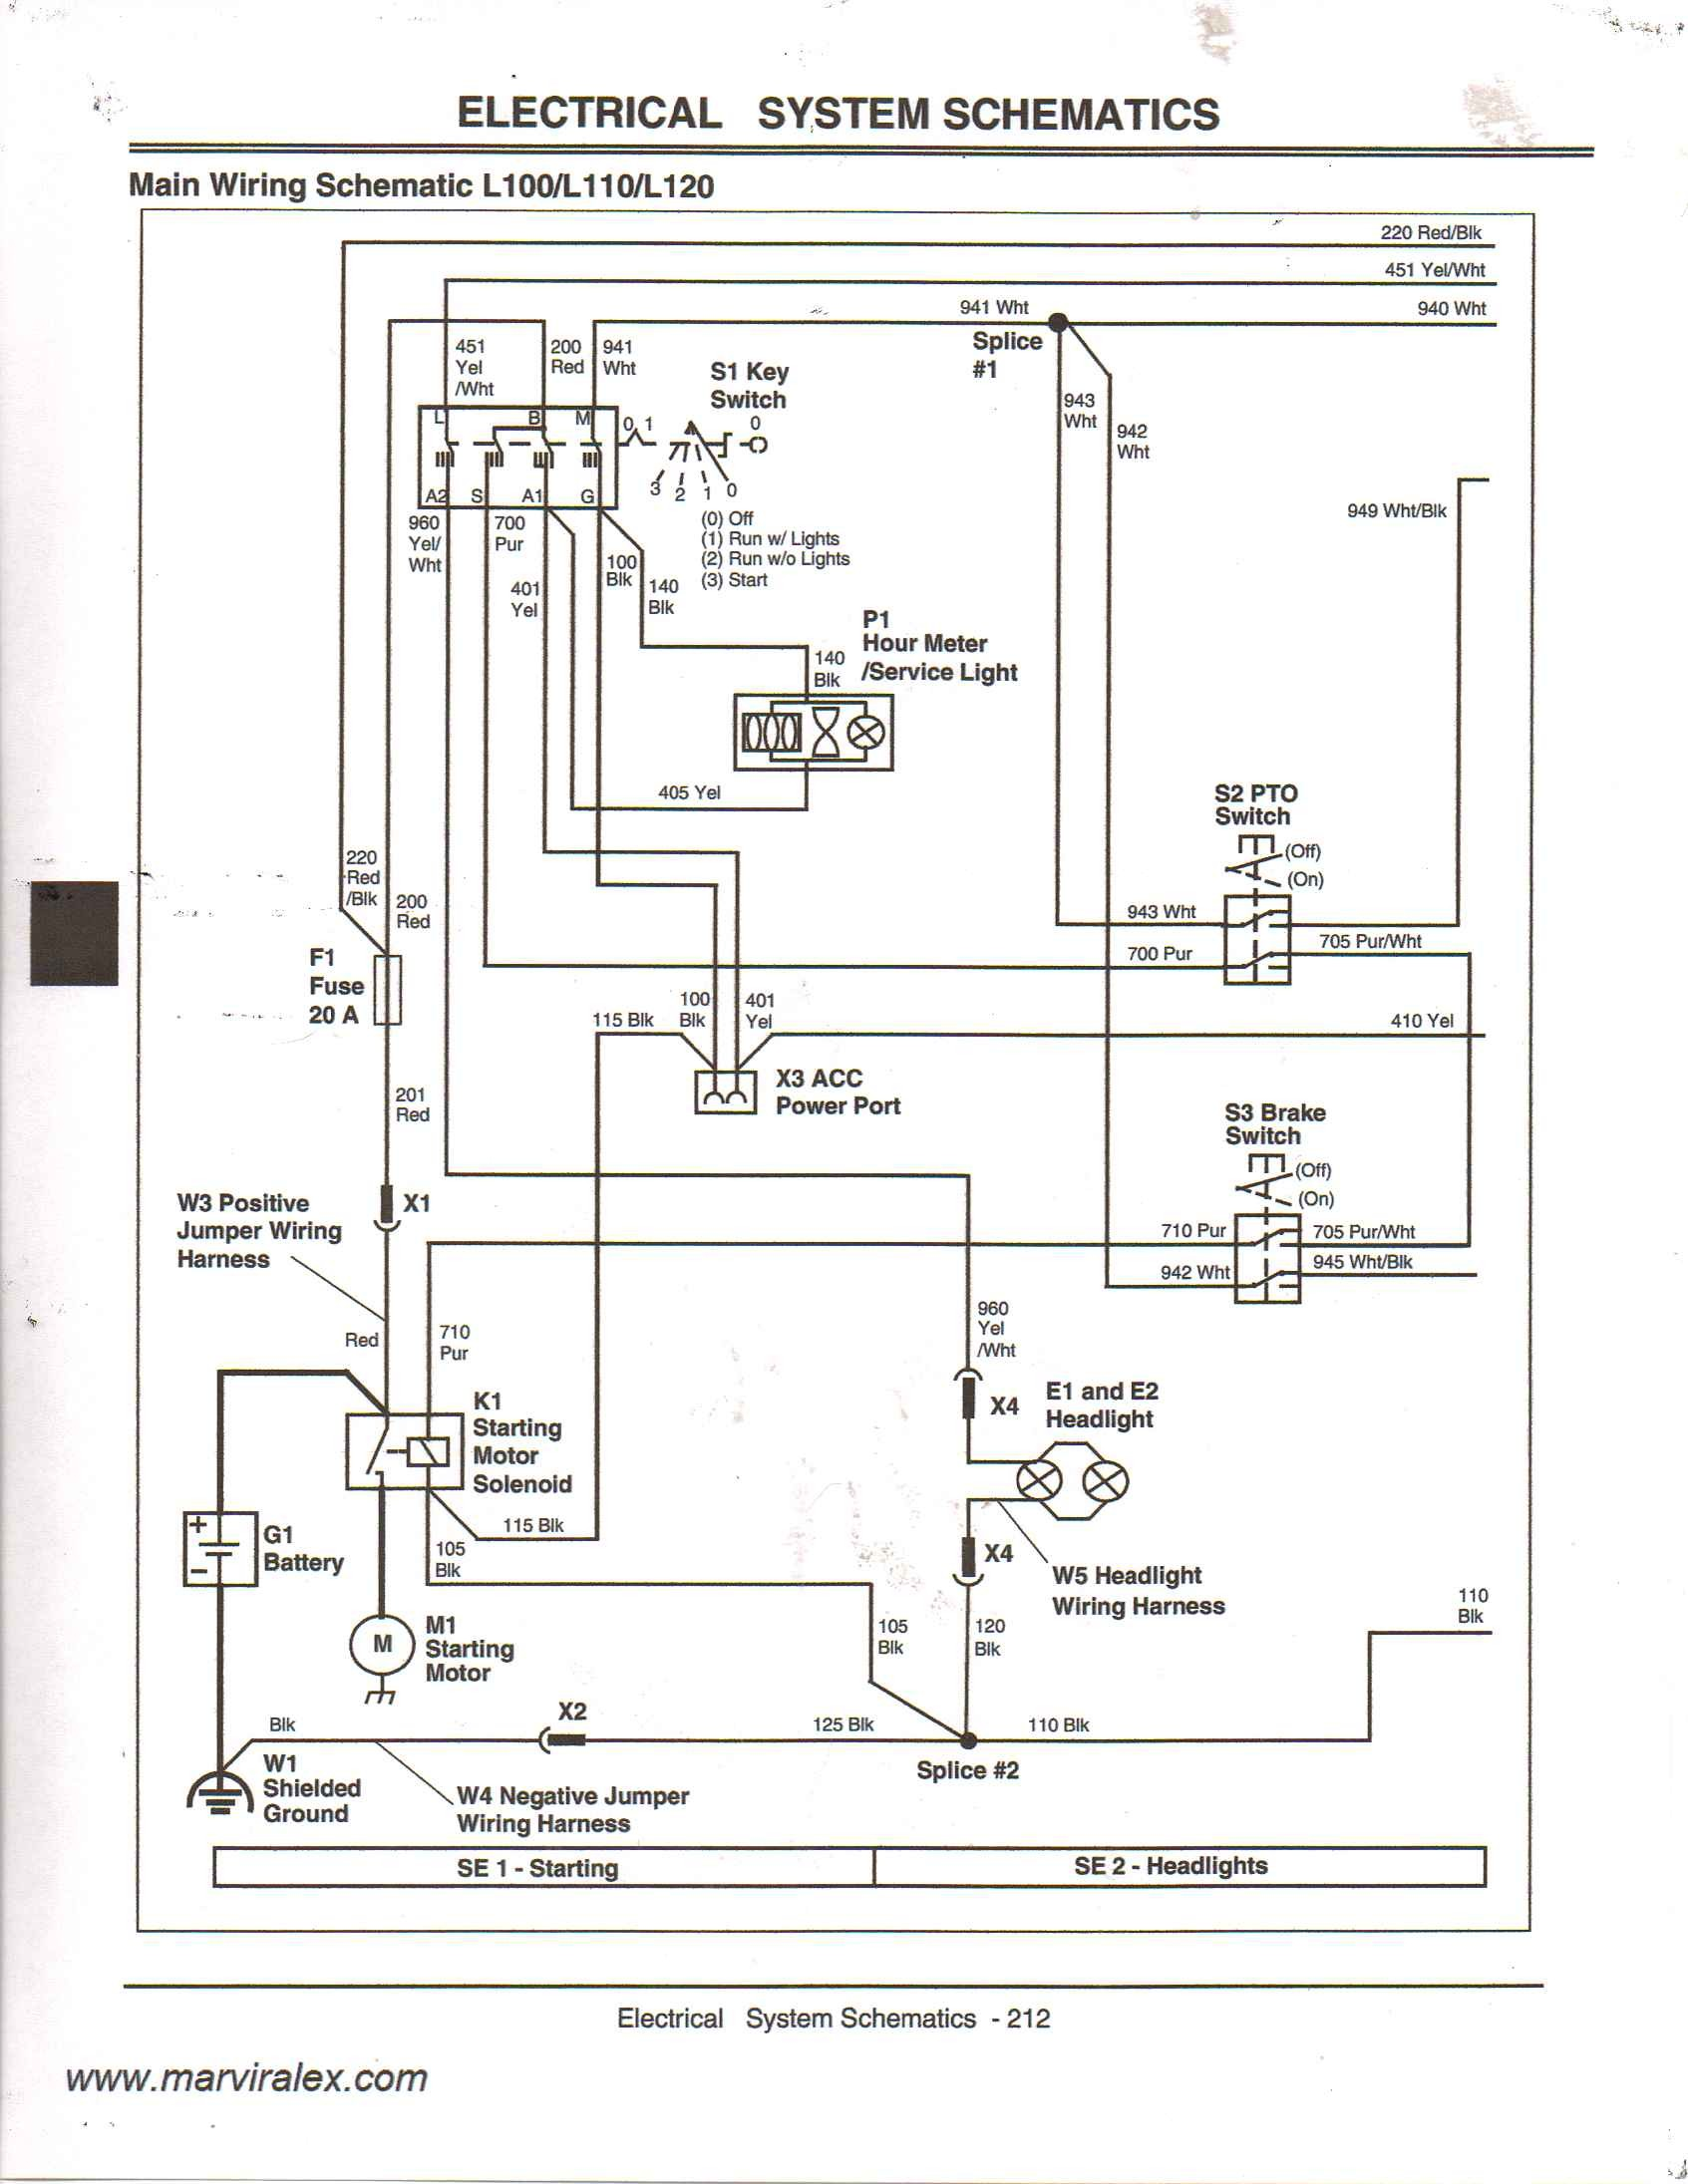 i need a wiring diagram for a 2004 jd l110 mower the mower will not